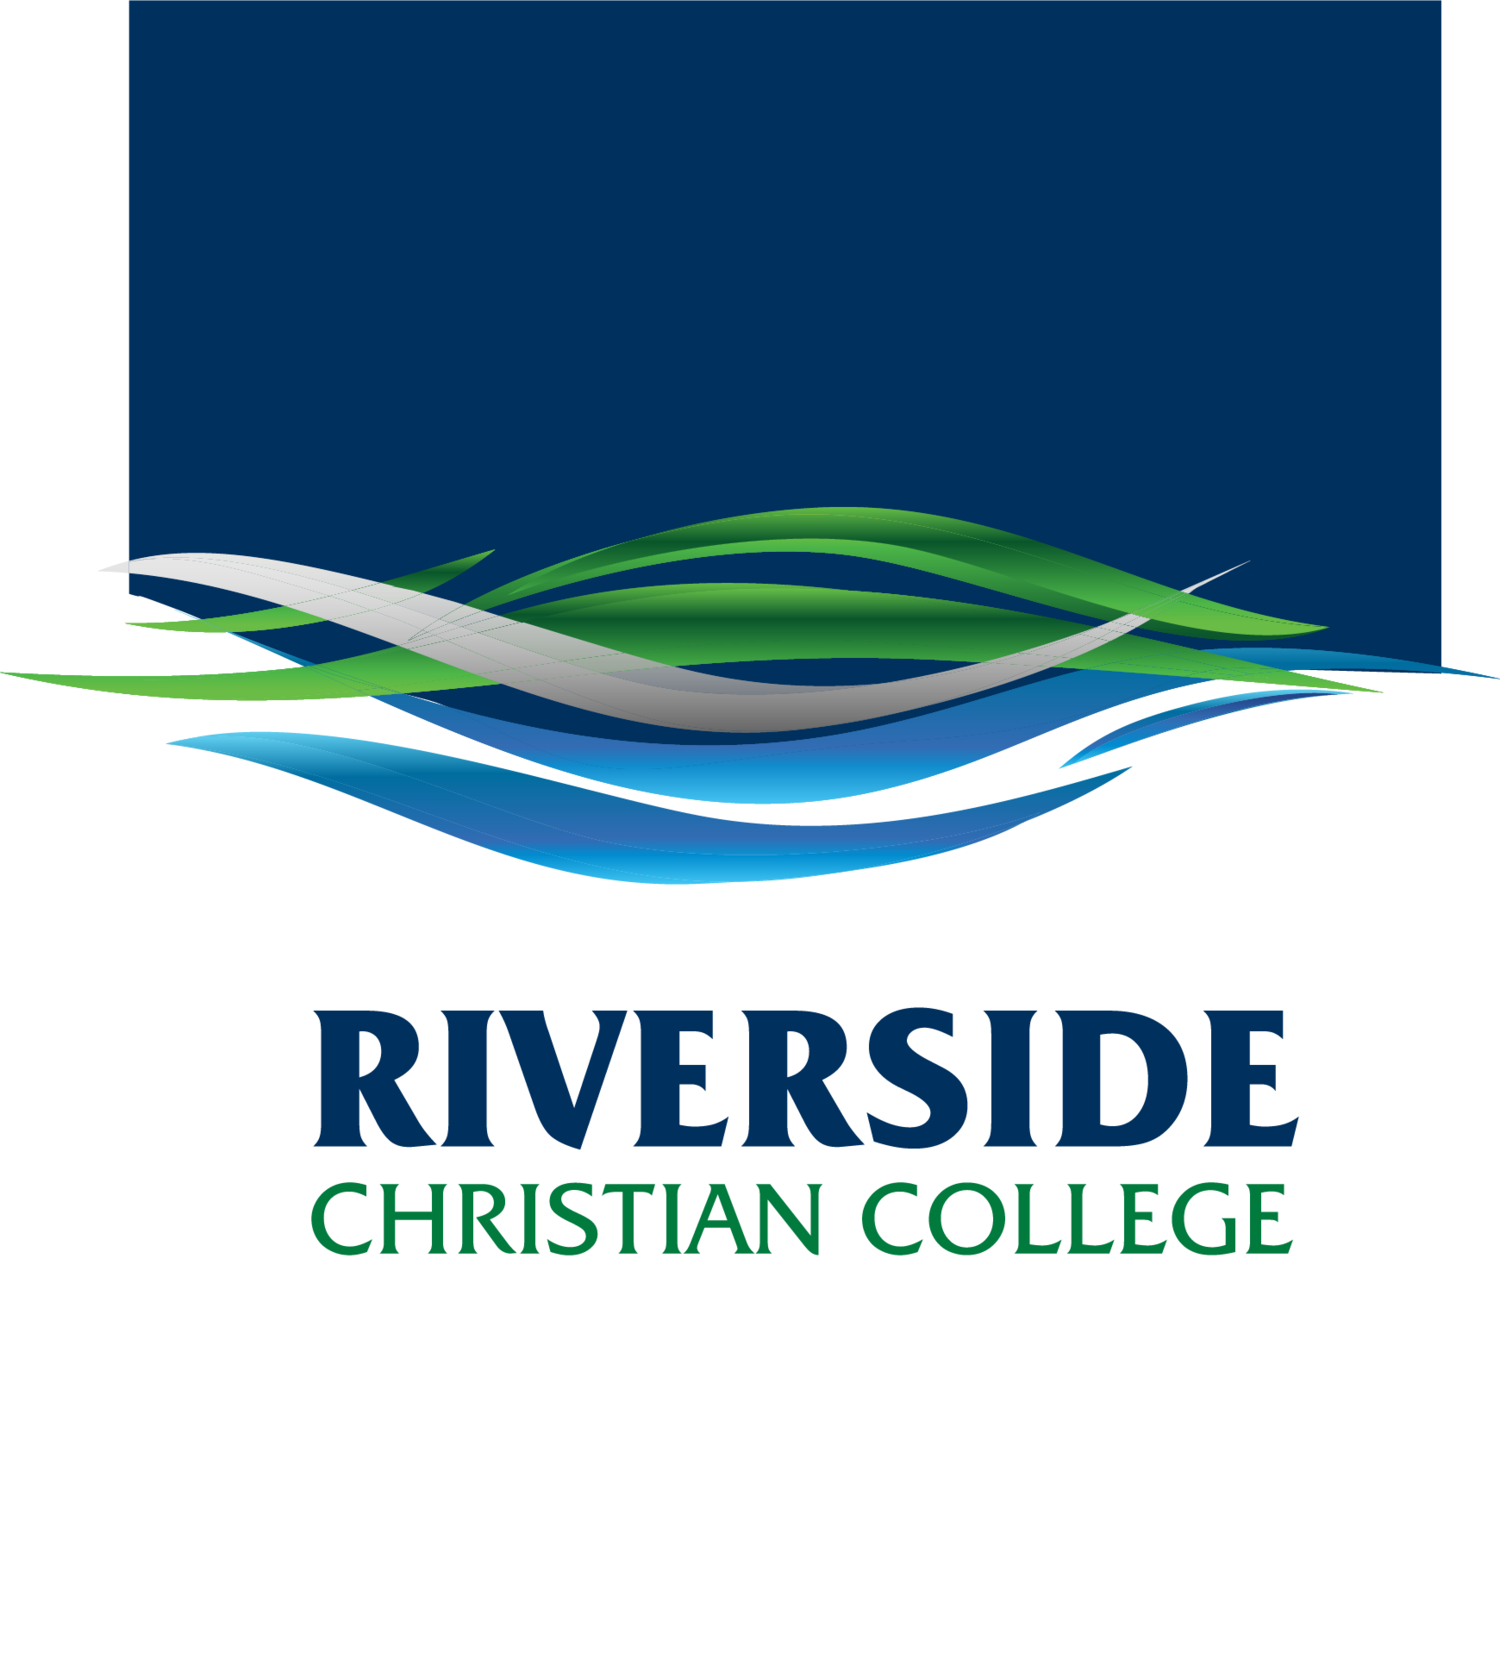 Riverside Christian College